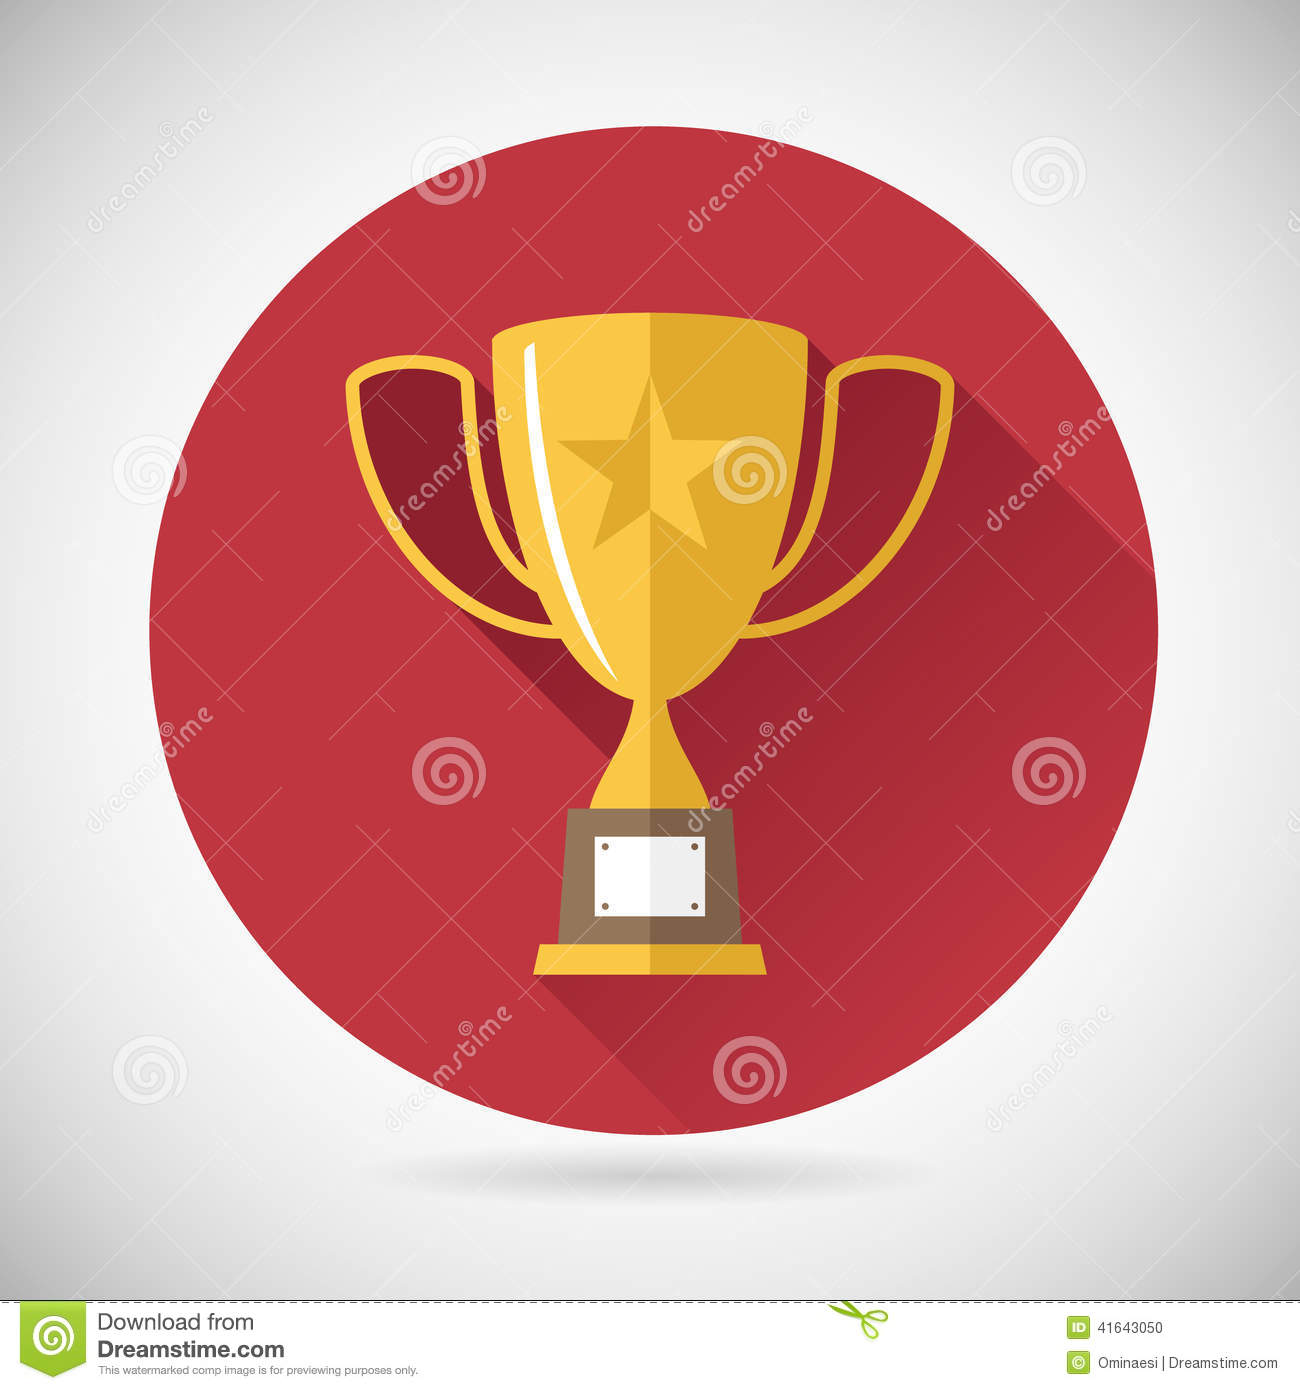 Victory Prize Award Symbol Trophy Cup Icon on